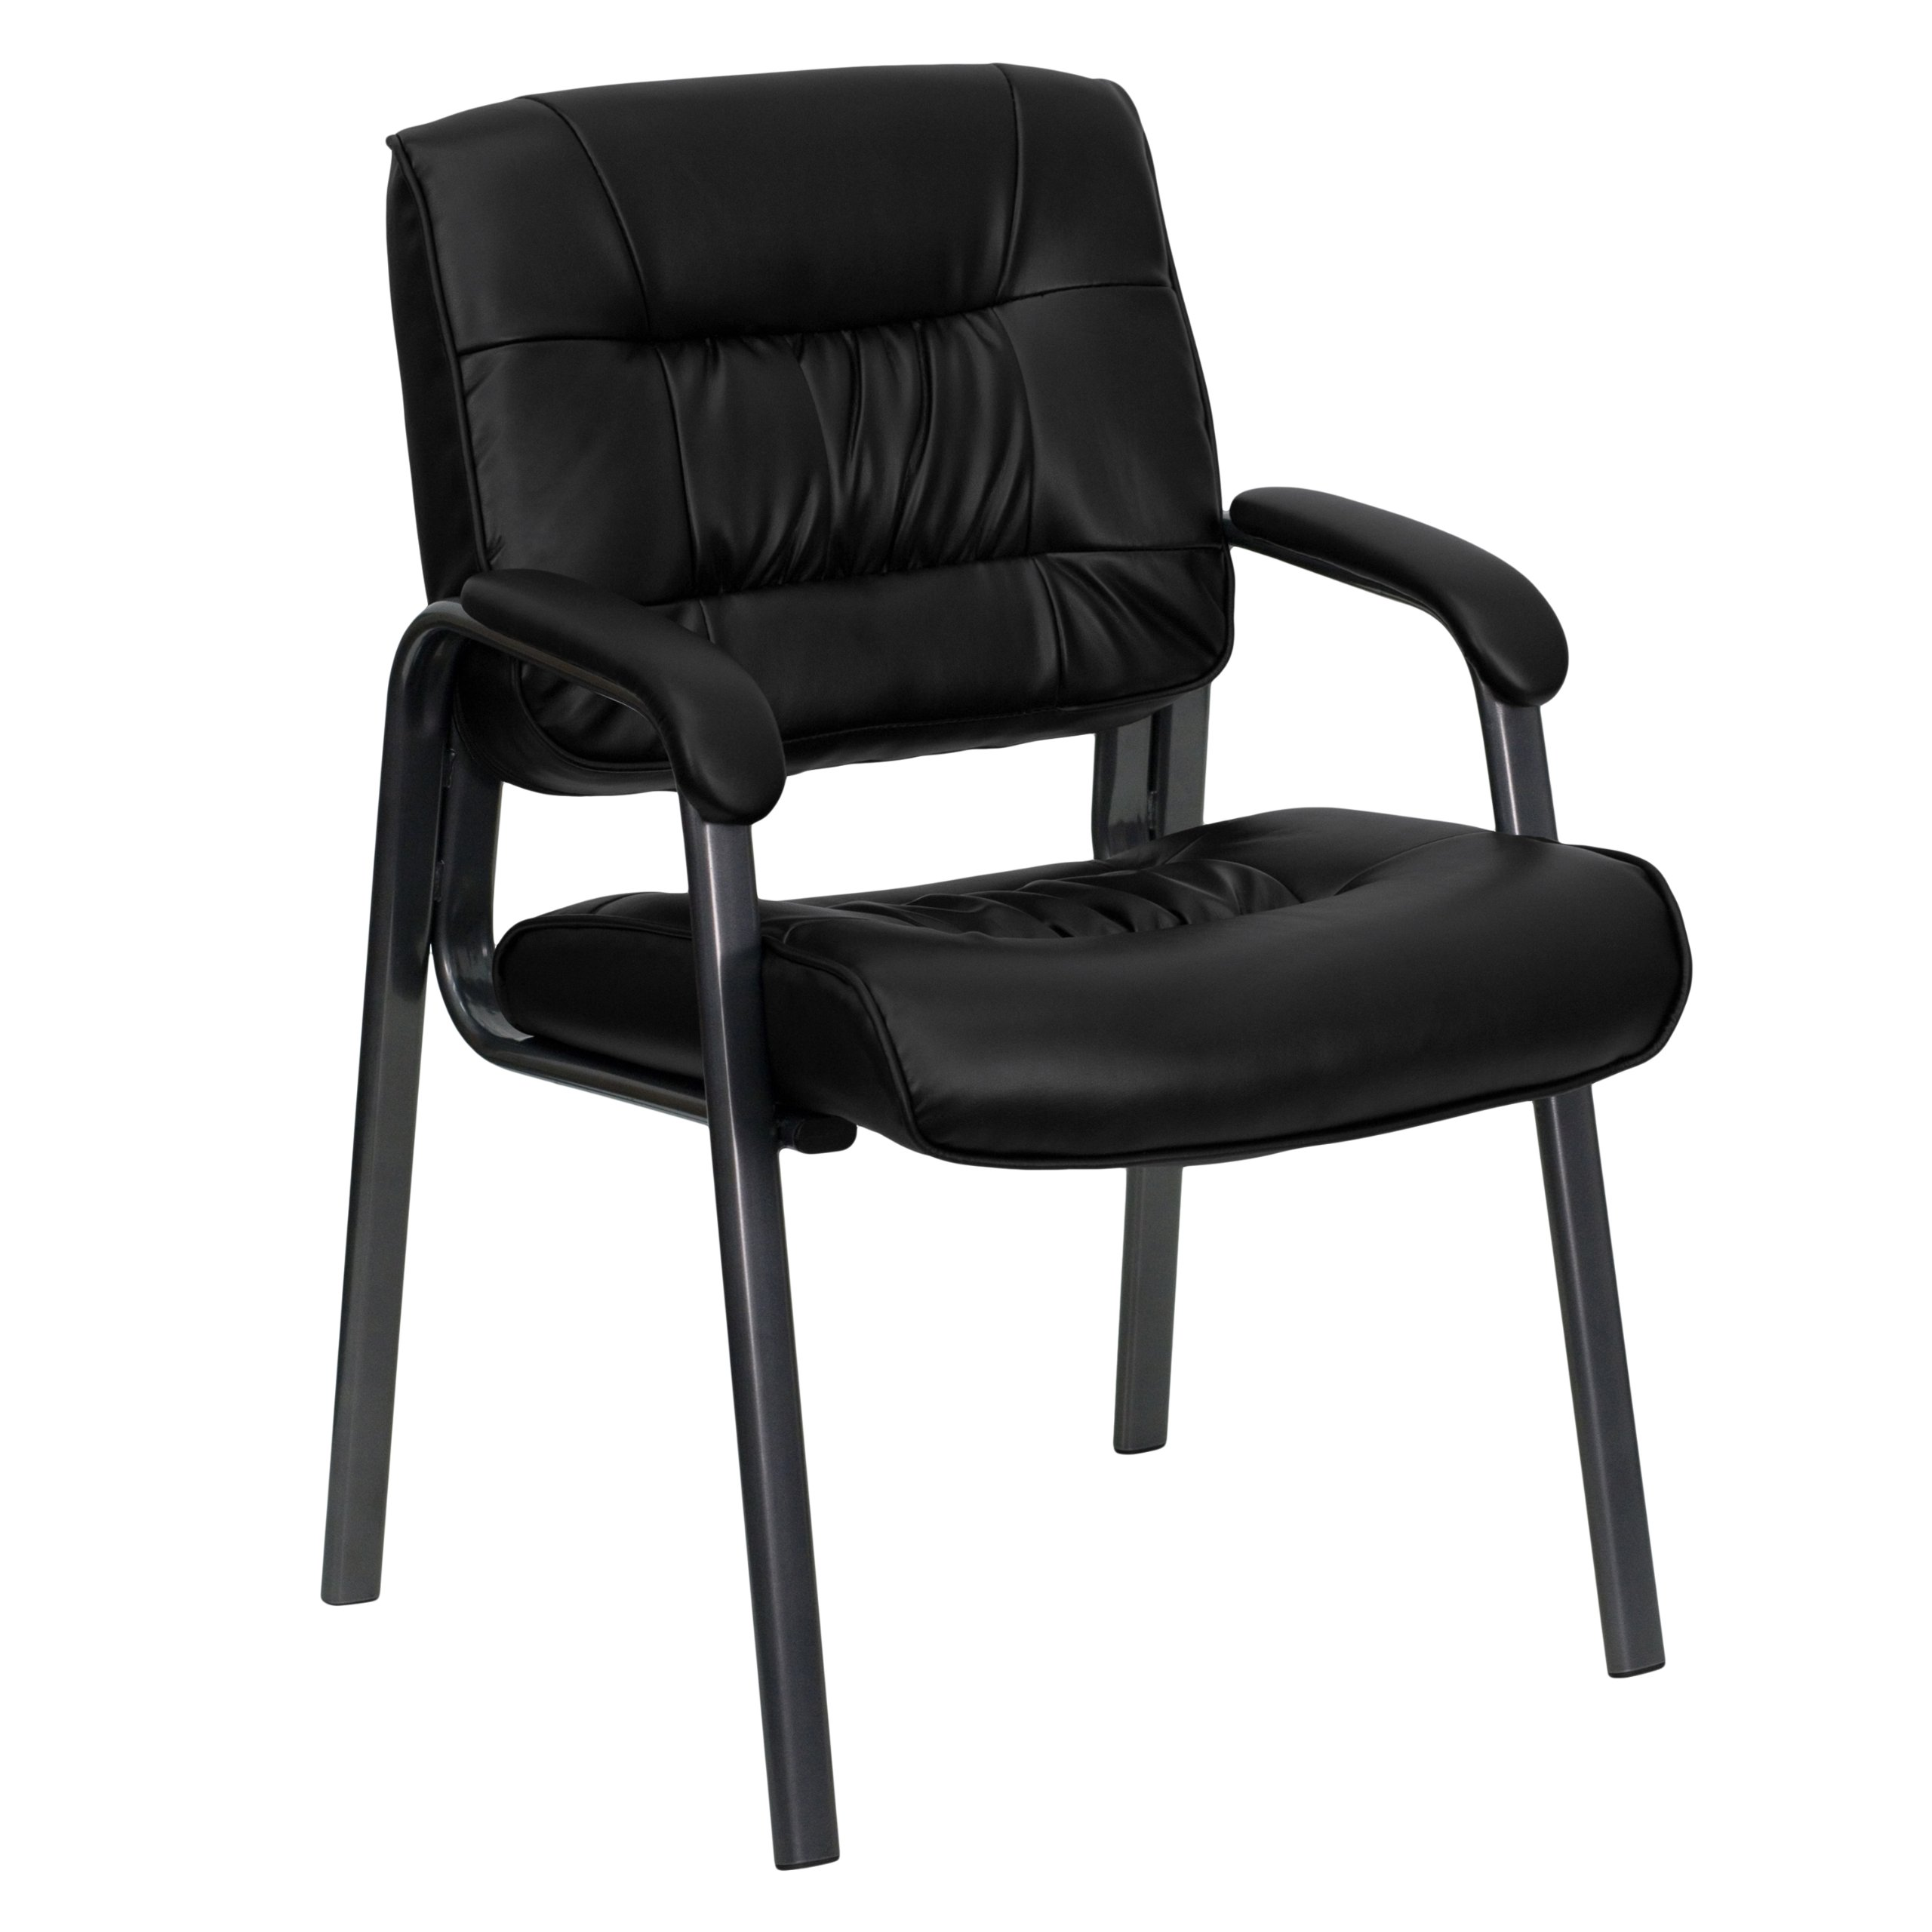 Flash Furniture Black LeatherSoft Executive Side Reception Chair with Titanium Gray Powder Coated Frame